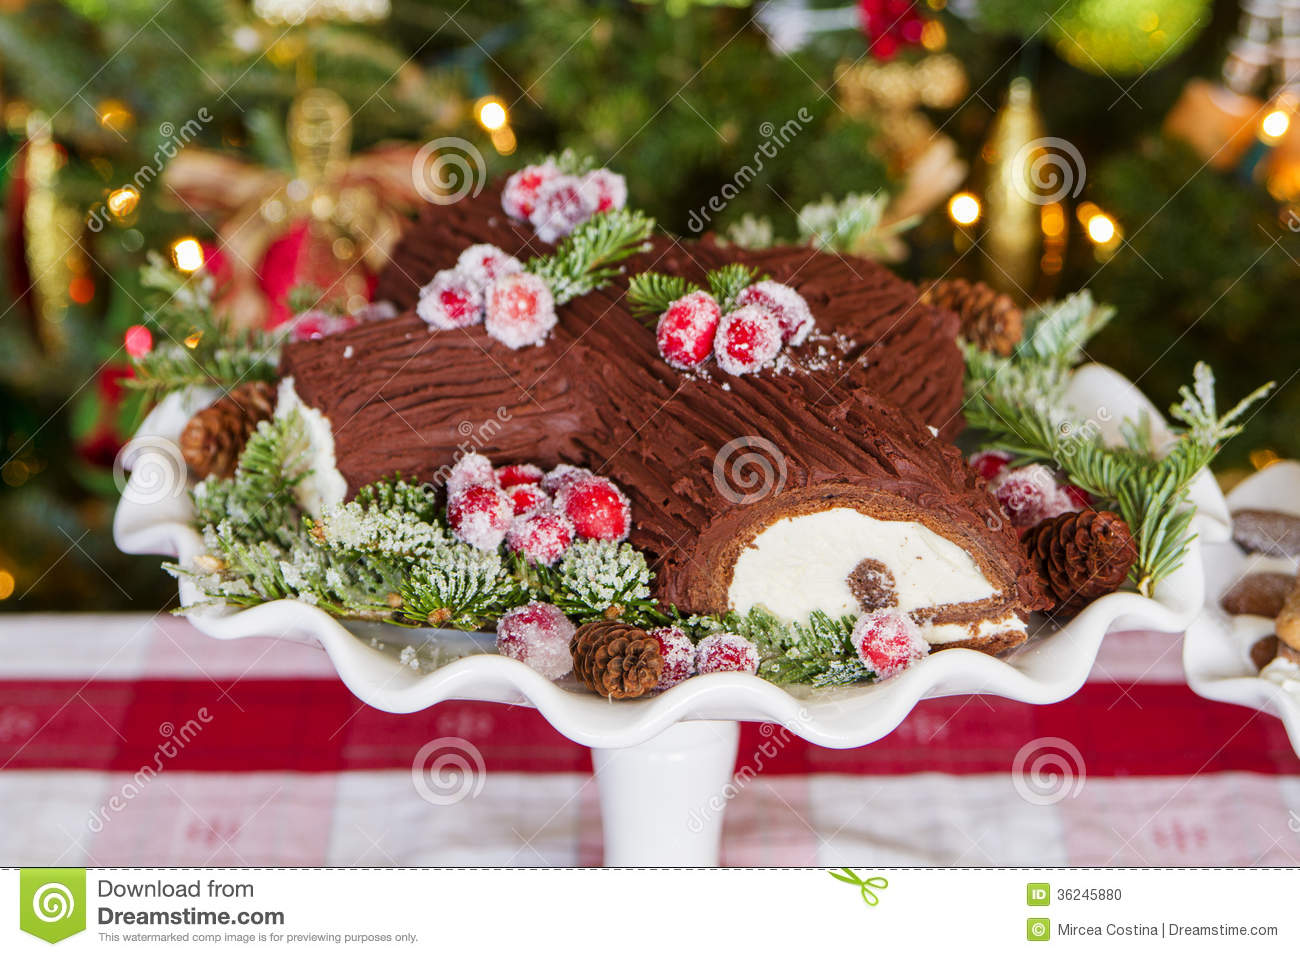 D corer blog fr decoration buche de noel - Buche de noel decorations ...